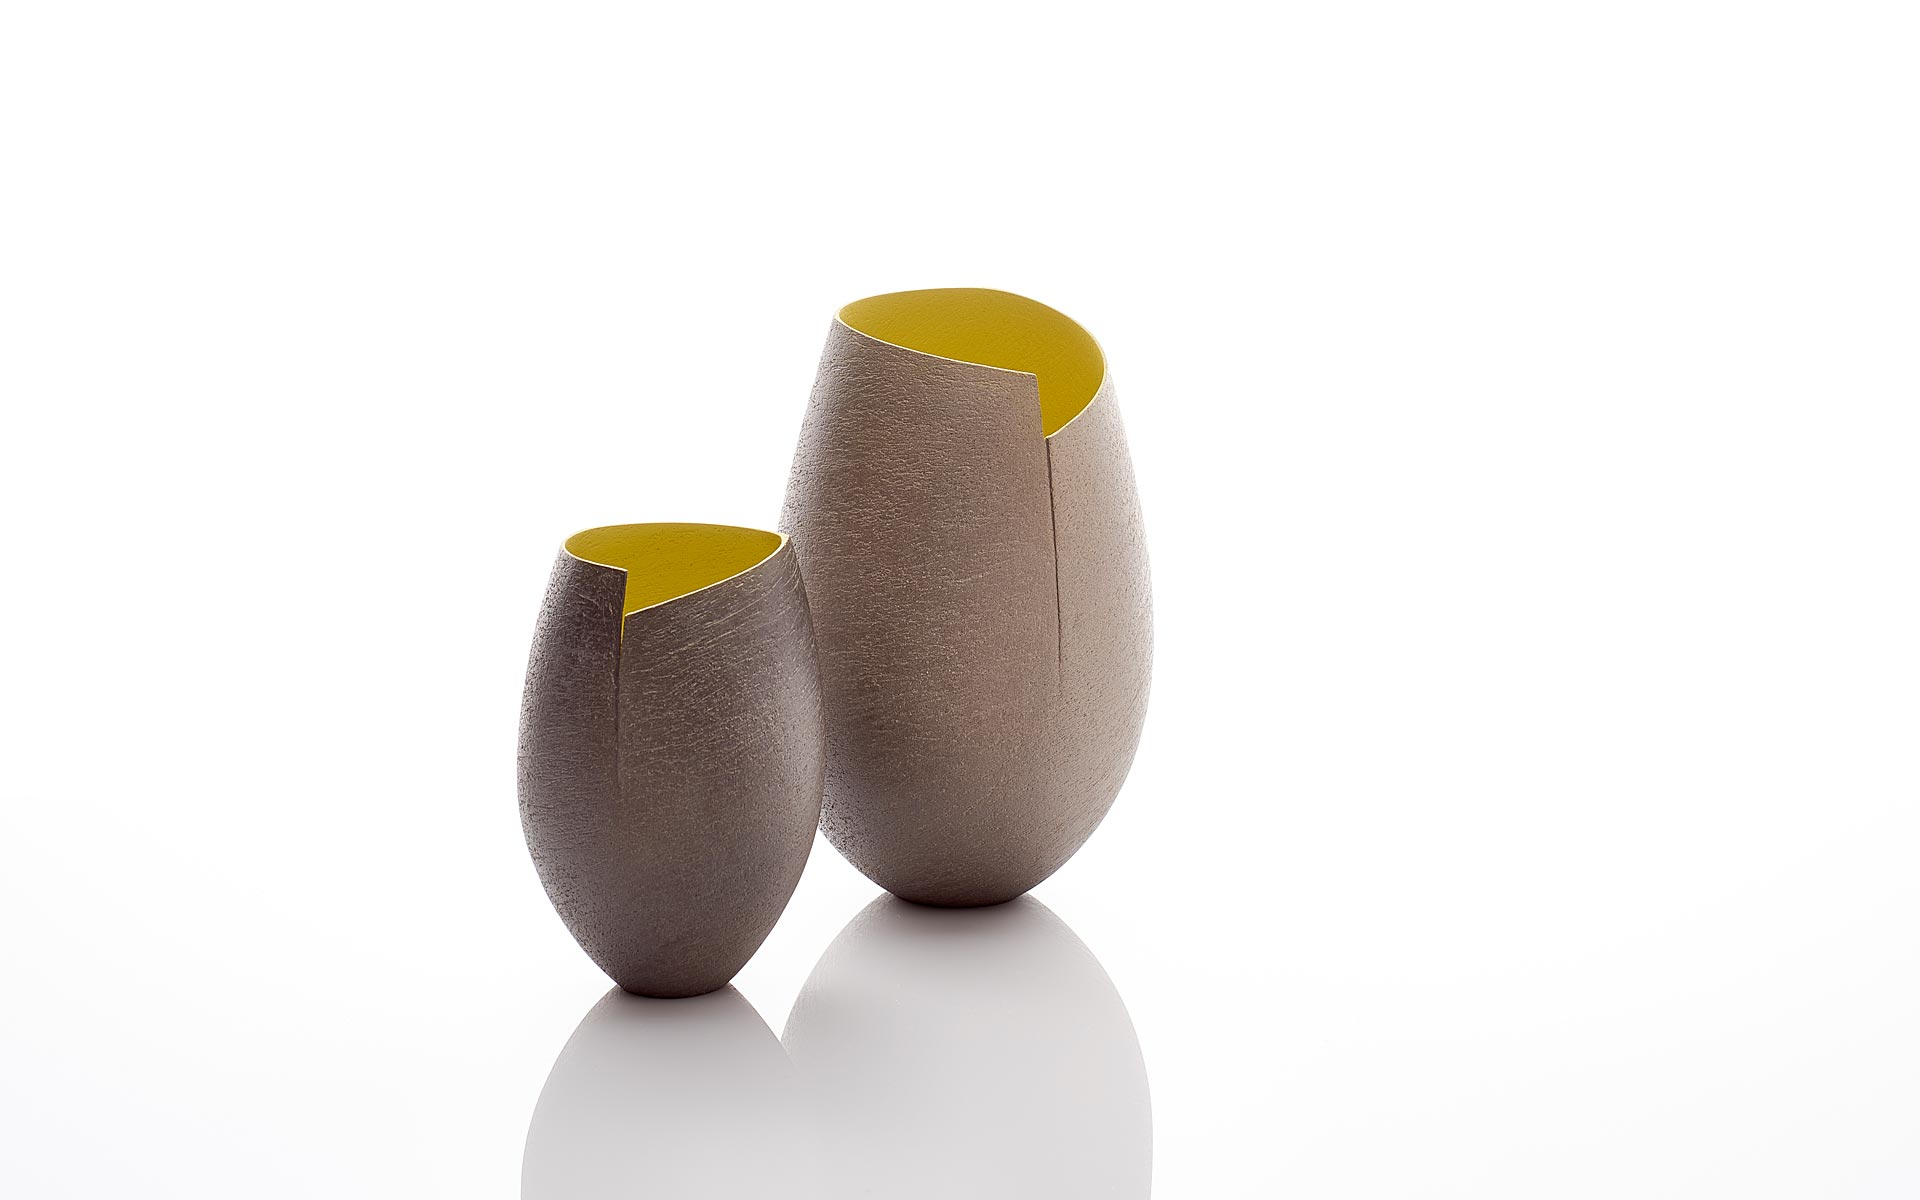 Two Cut Vessels with Yellow Interior